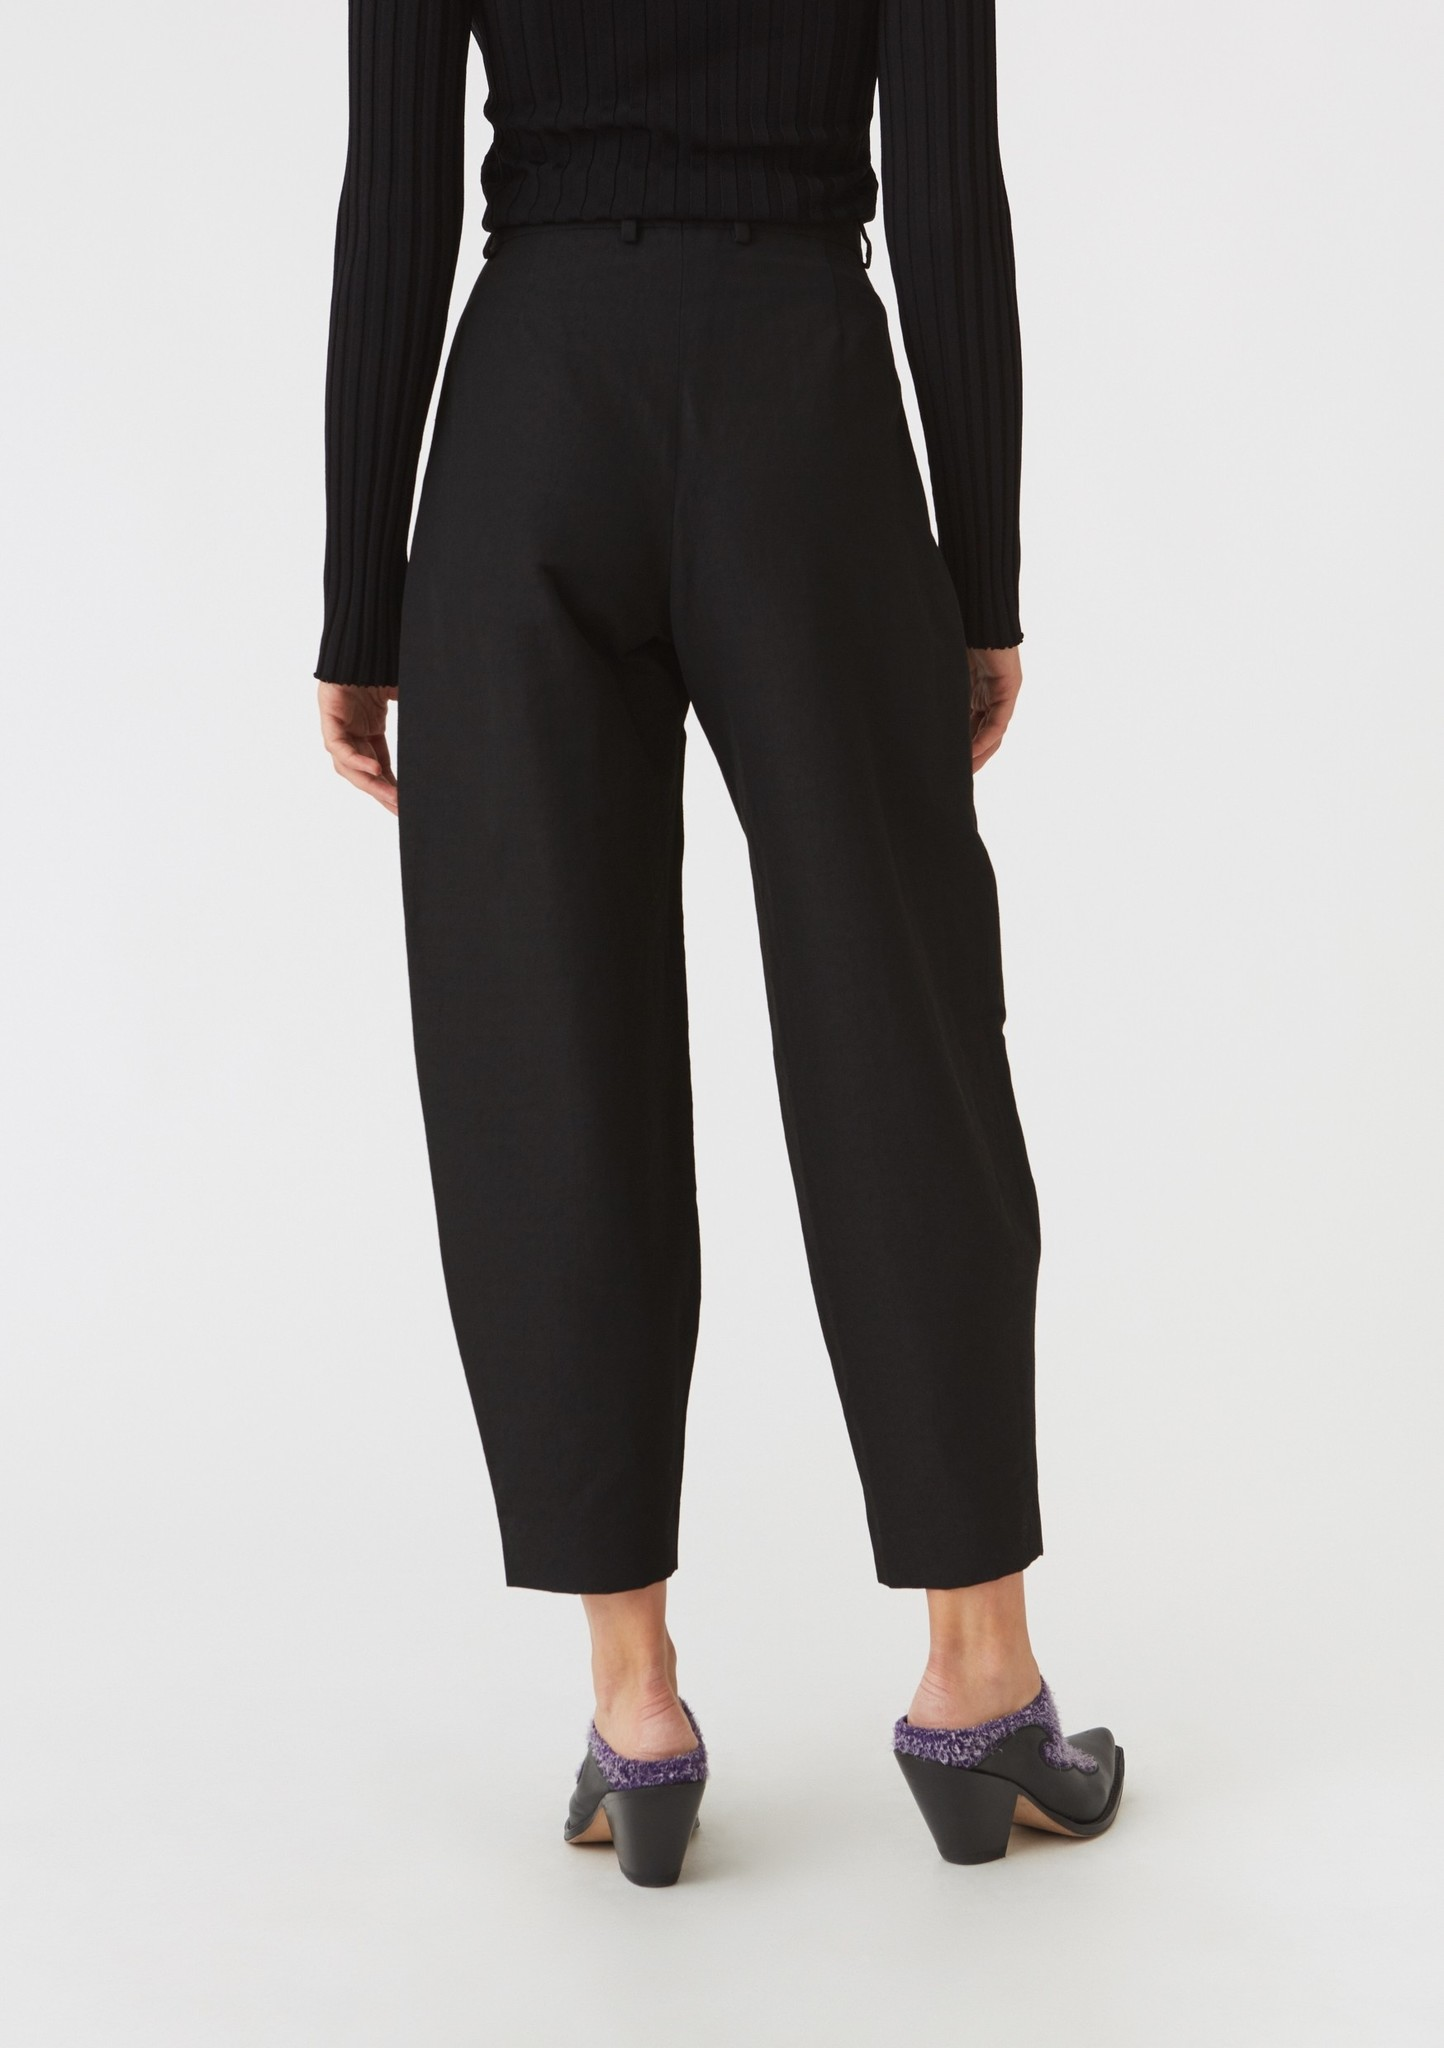 Peak trouser Black Slub